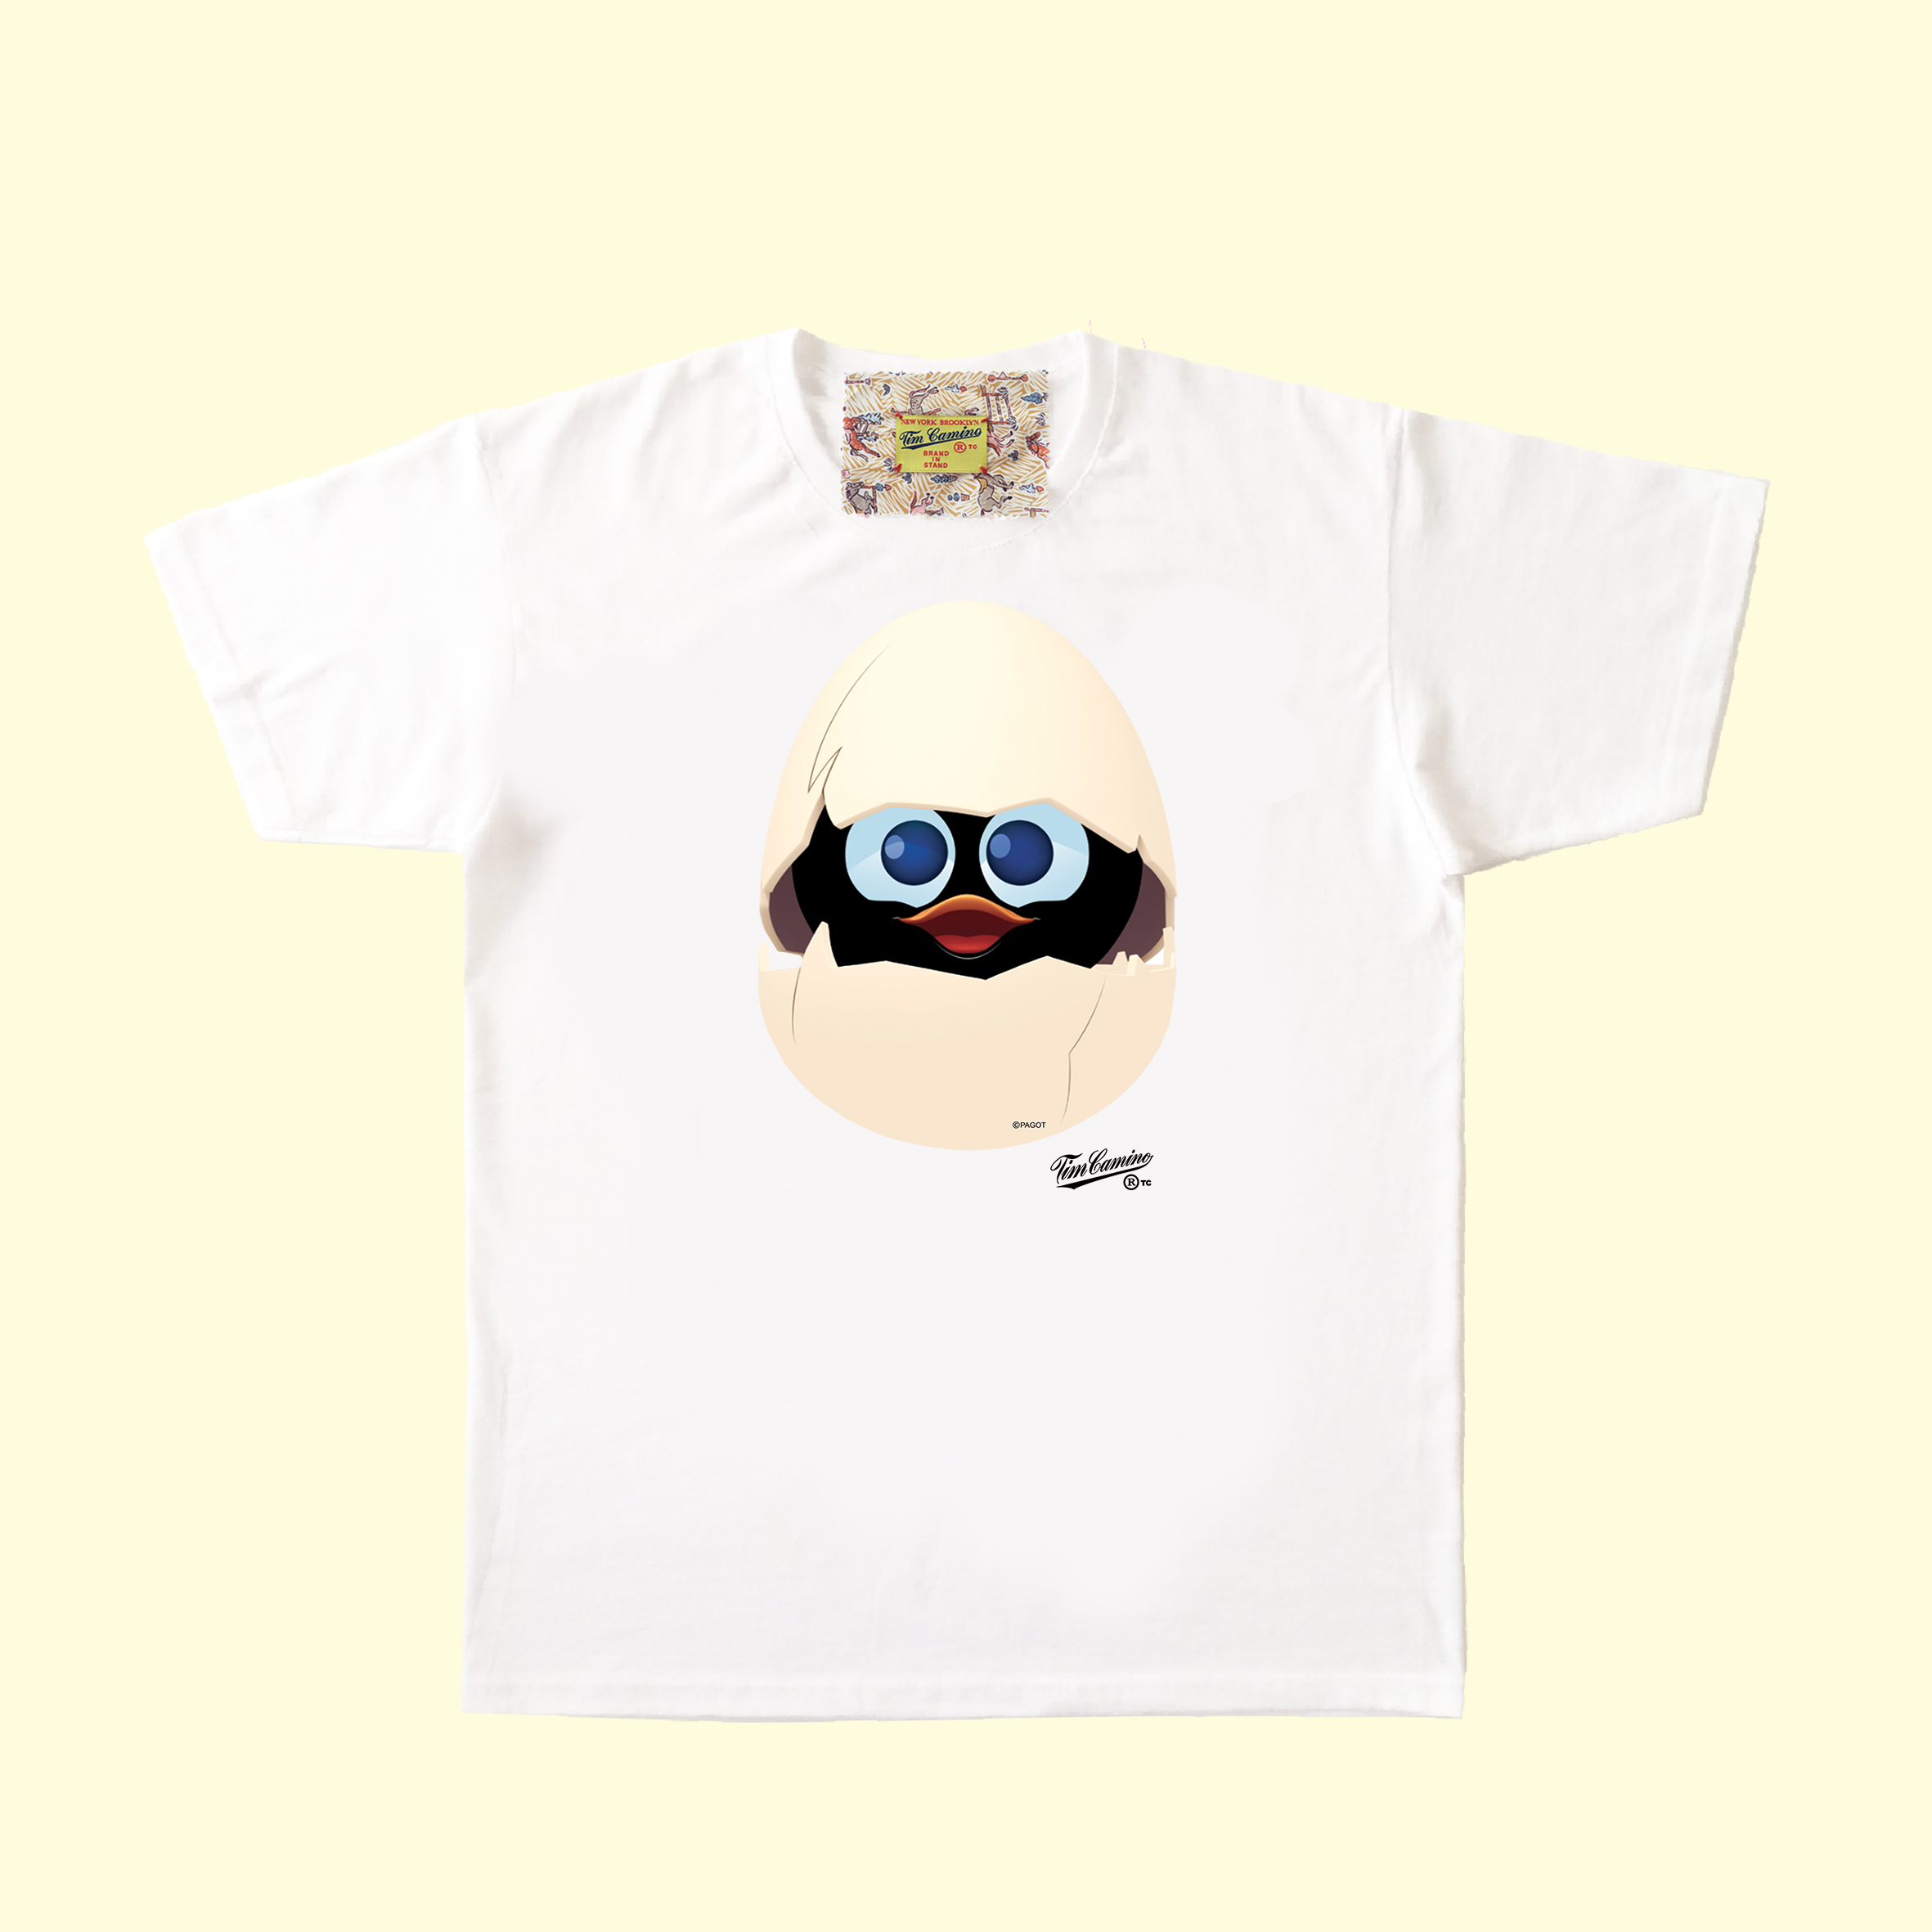 Calimero Egg T-shirt